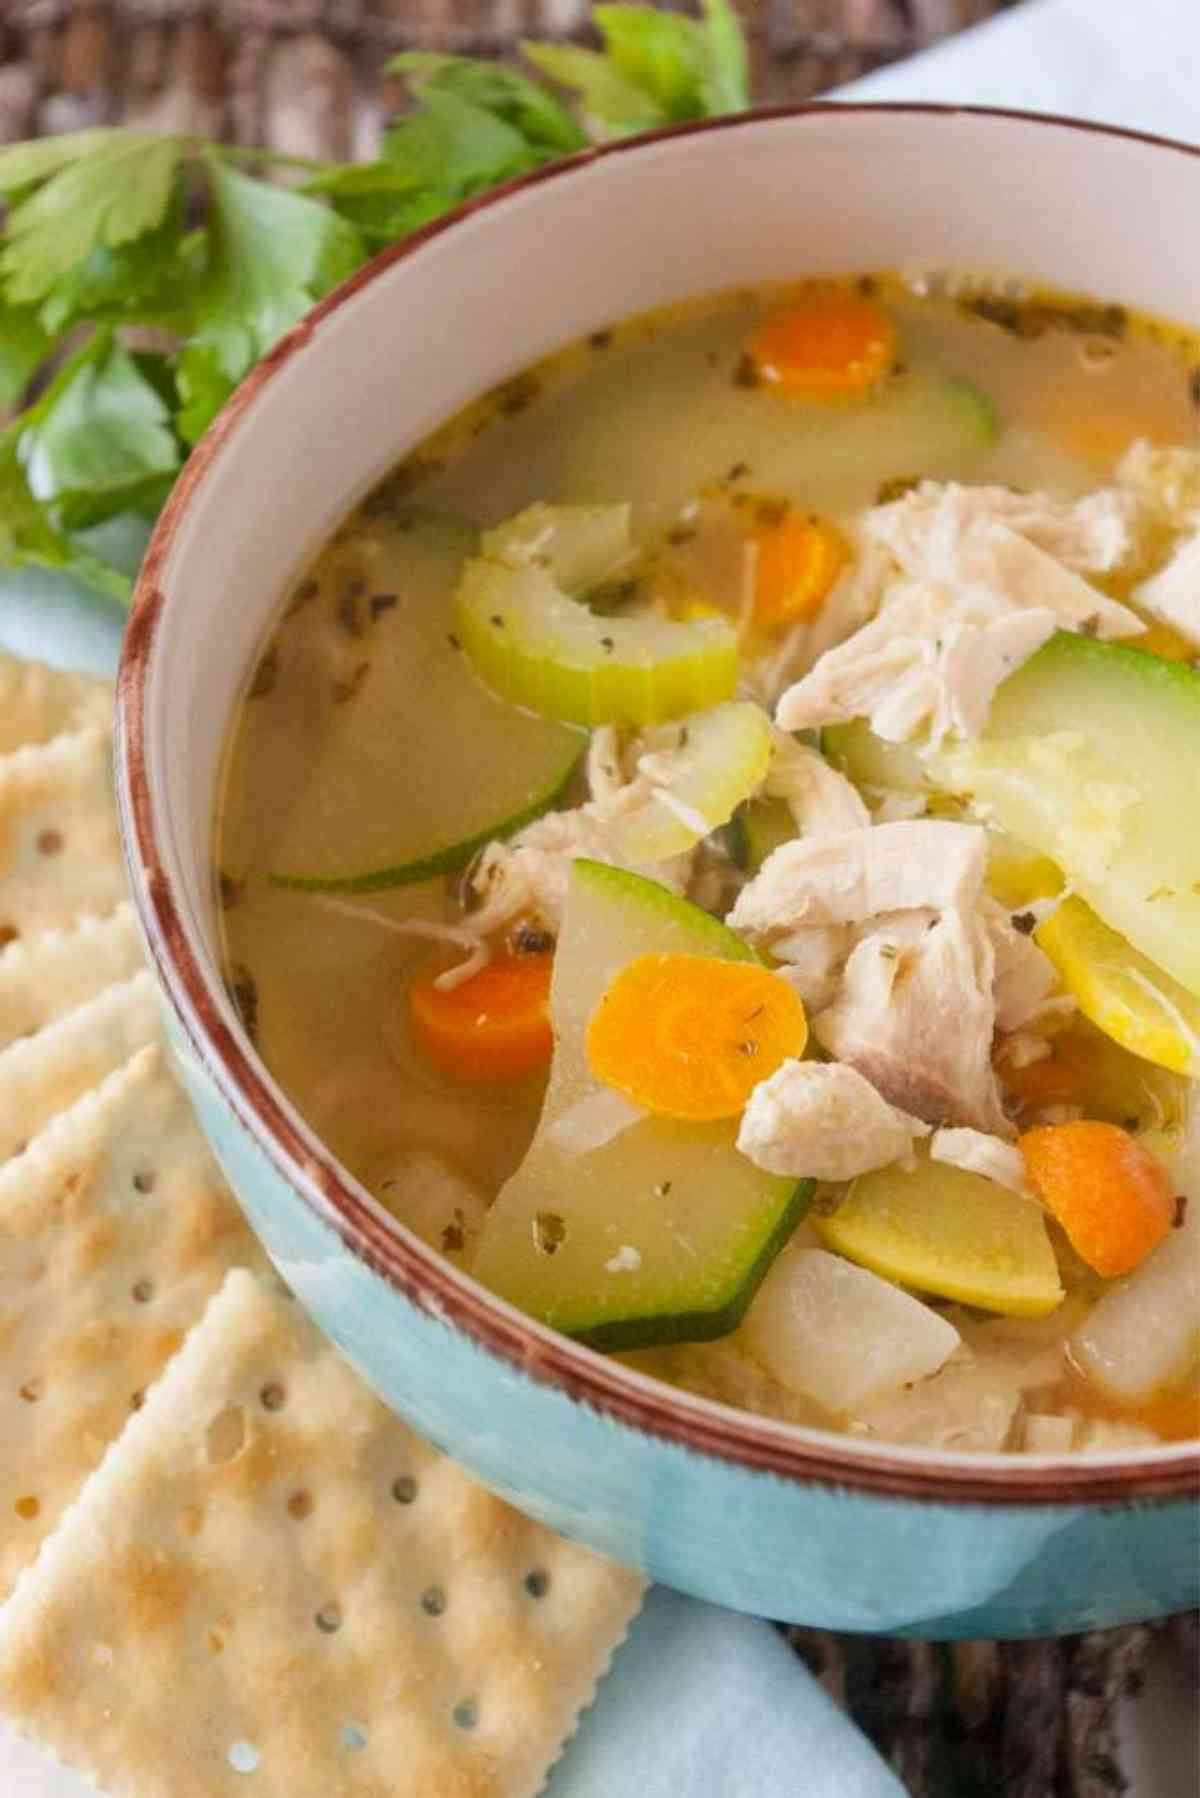 Big bowl of hot chicken soup full of zucchini, carrots, and more!